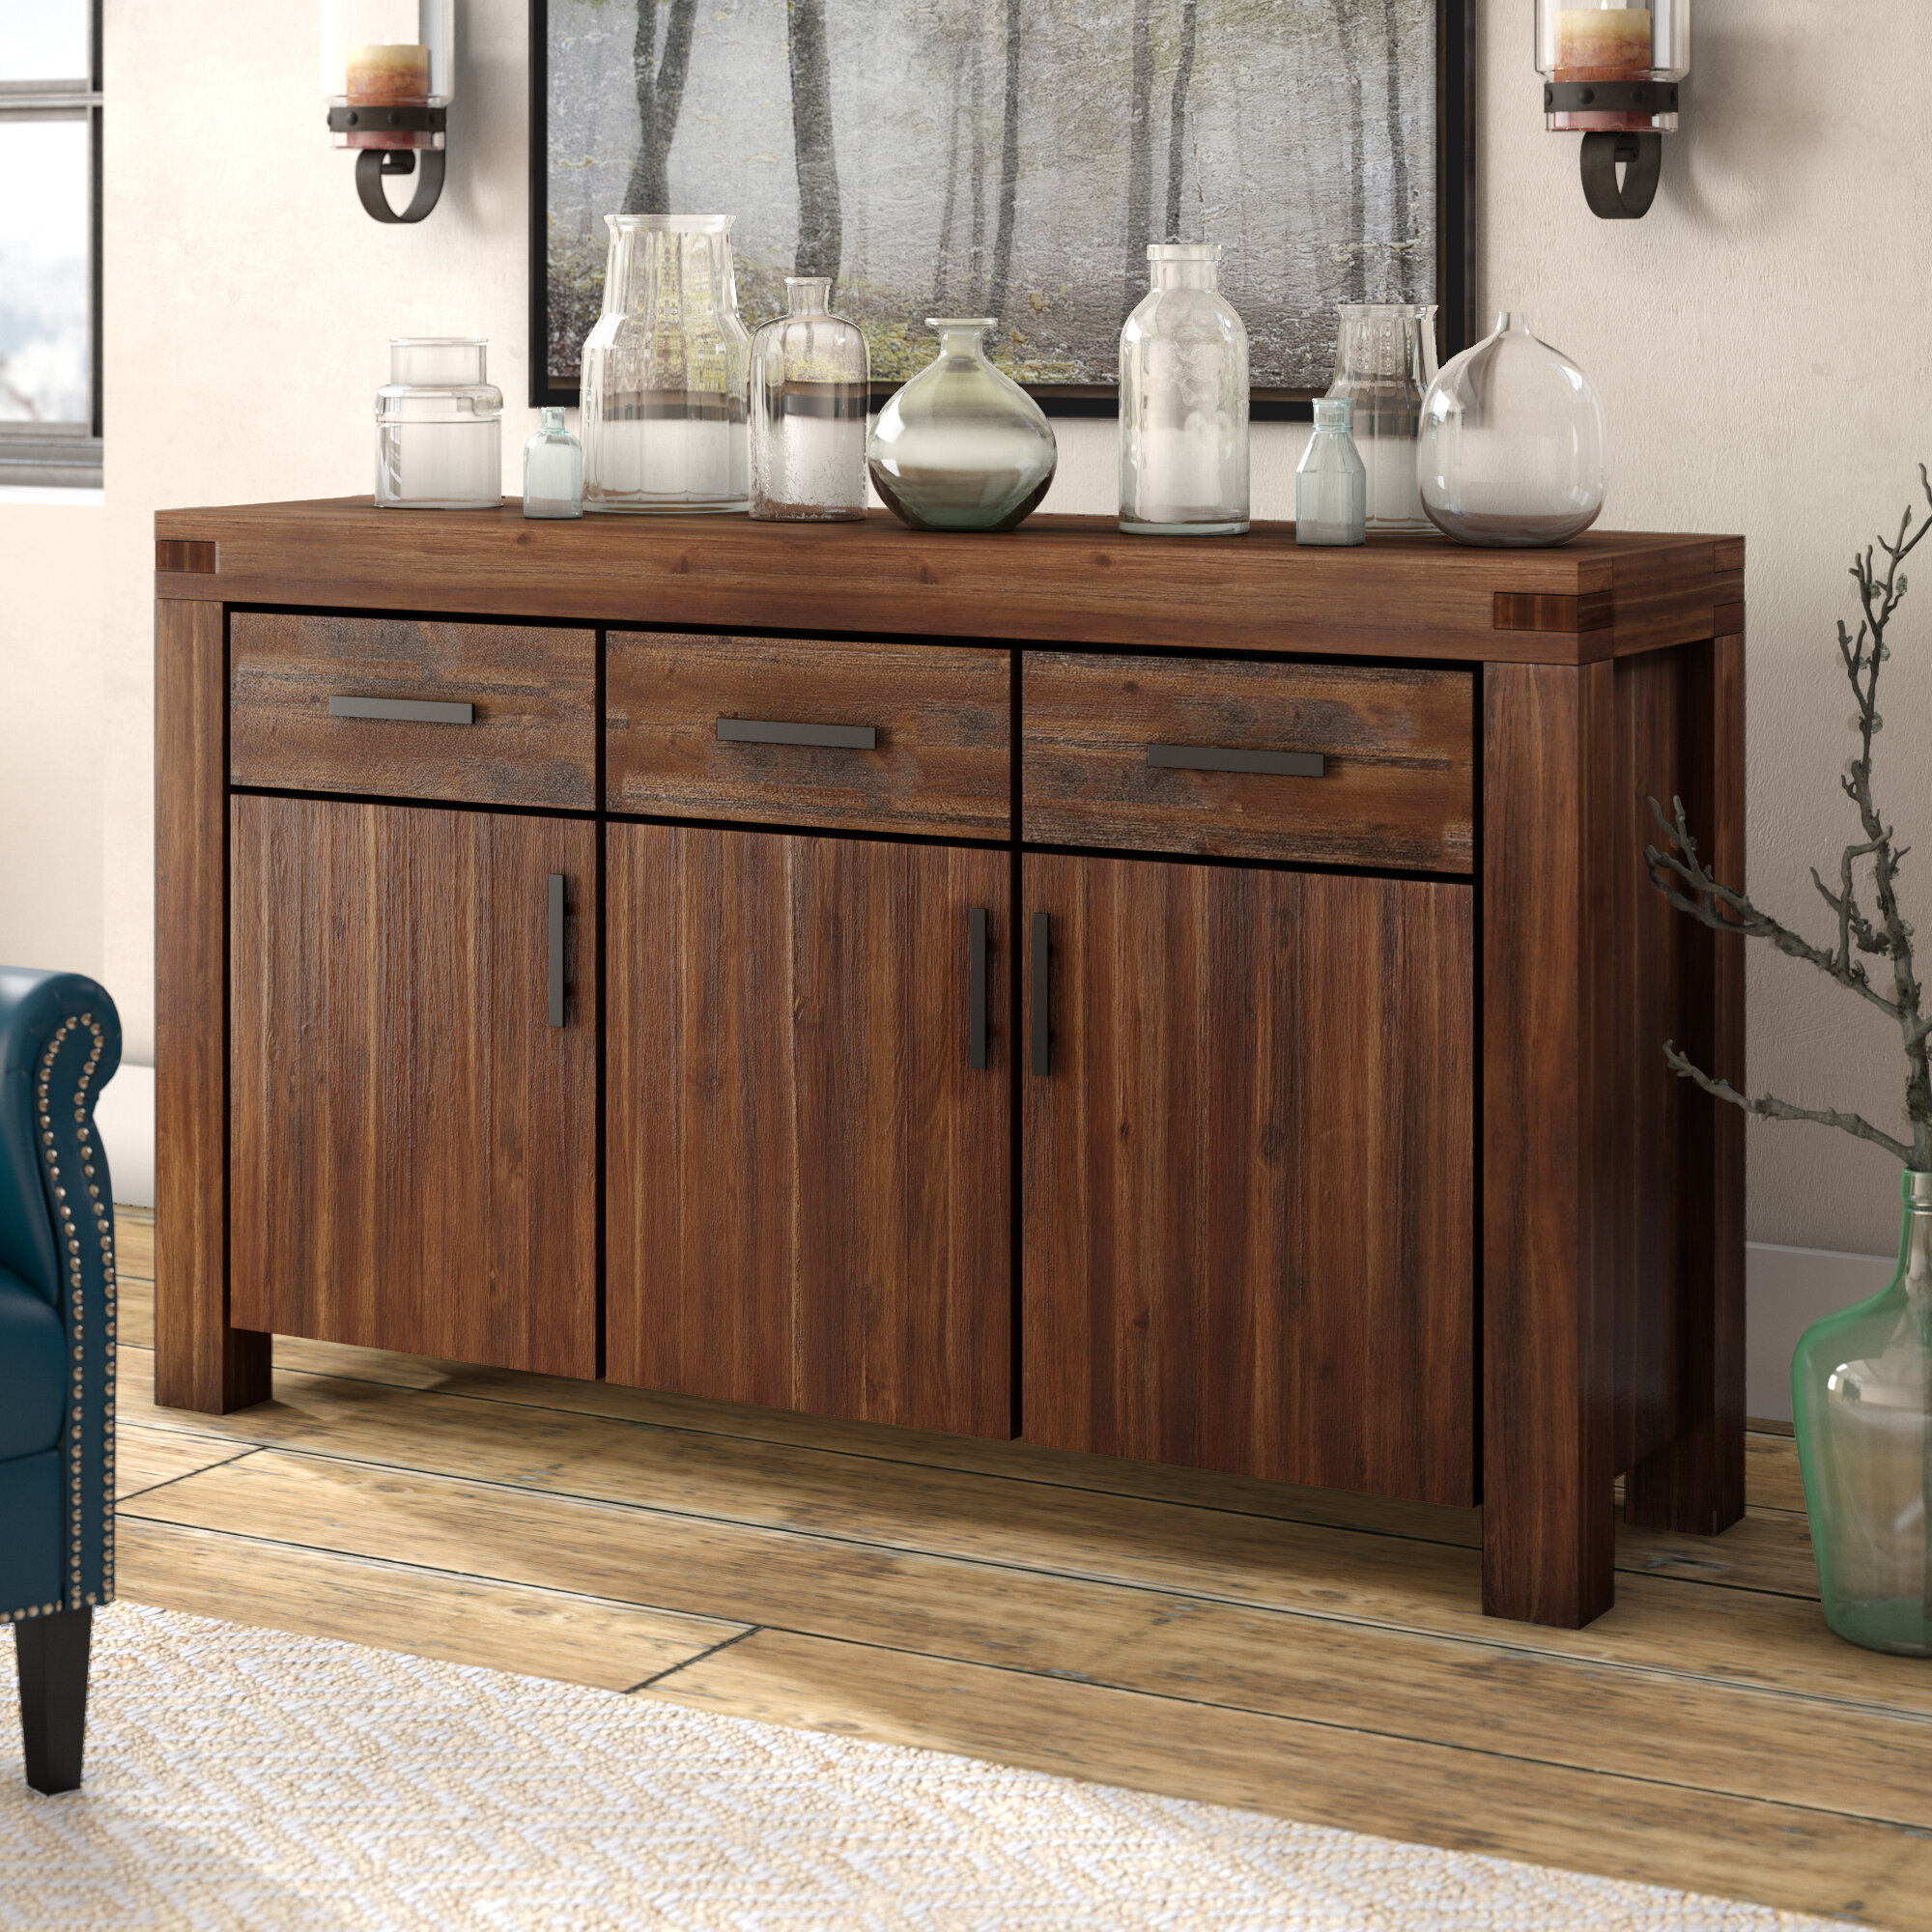 Vintage Credenza You'll Love In 2019 | Wayfair Pertaining To Candace Door Credenzas (View 28 of 30)